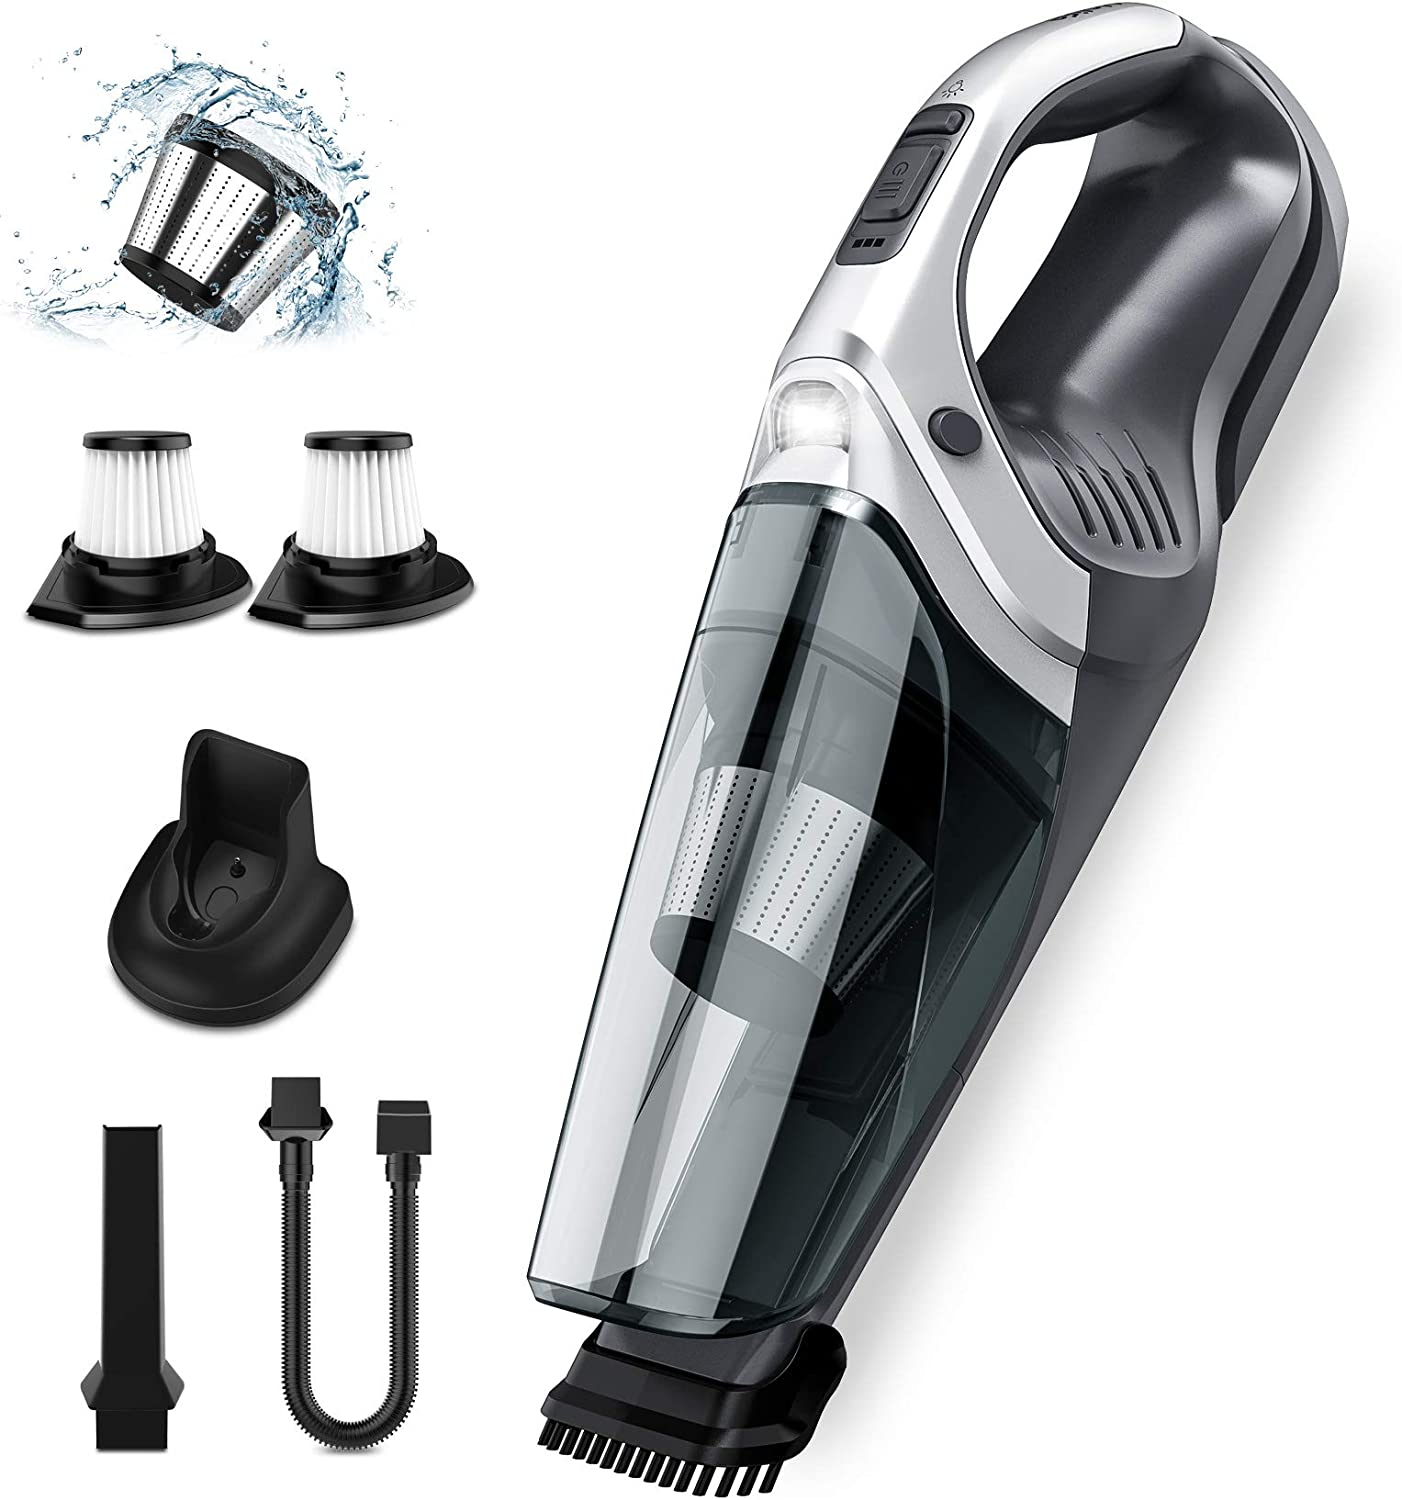 Holife Handheld Vacuum Cordless Portable Vac Cleaner with 9KPA High Power Cyclonic Suction, Washable Stainless Steel Filter, LED Light, Rechargeable Wet/Dry Vac for Pet Hair, Dust,Home Cleaning